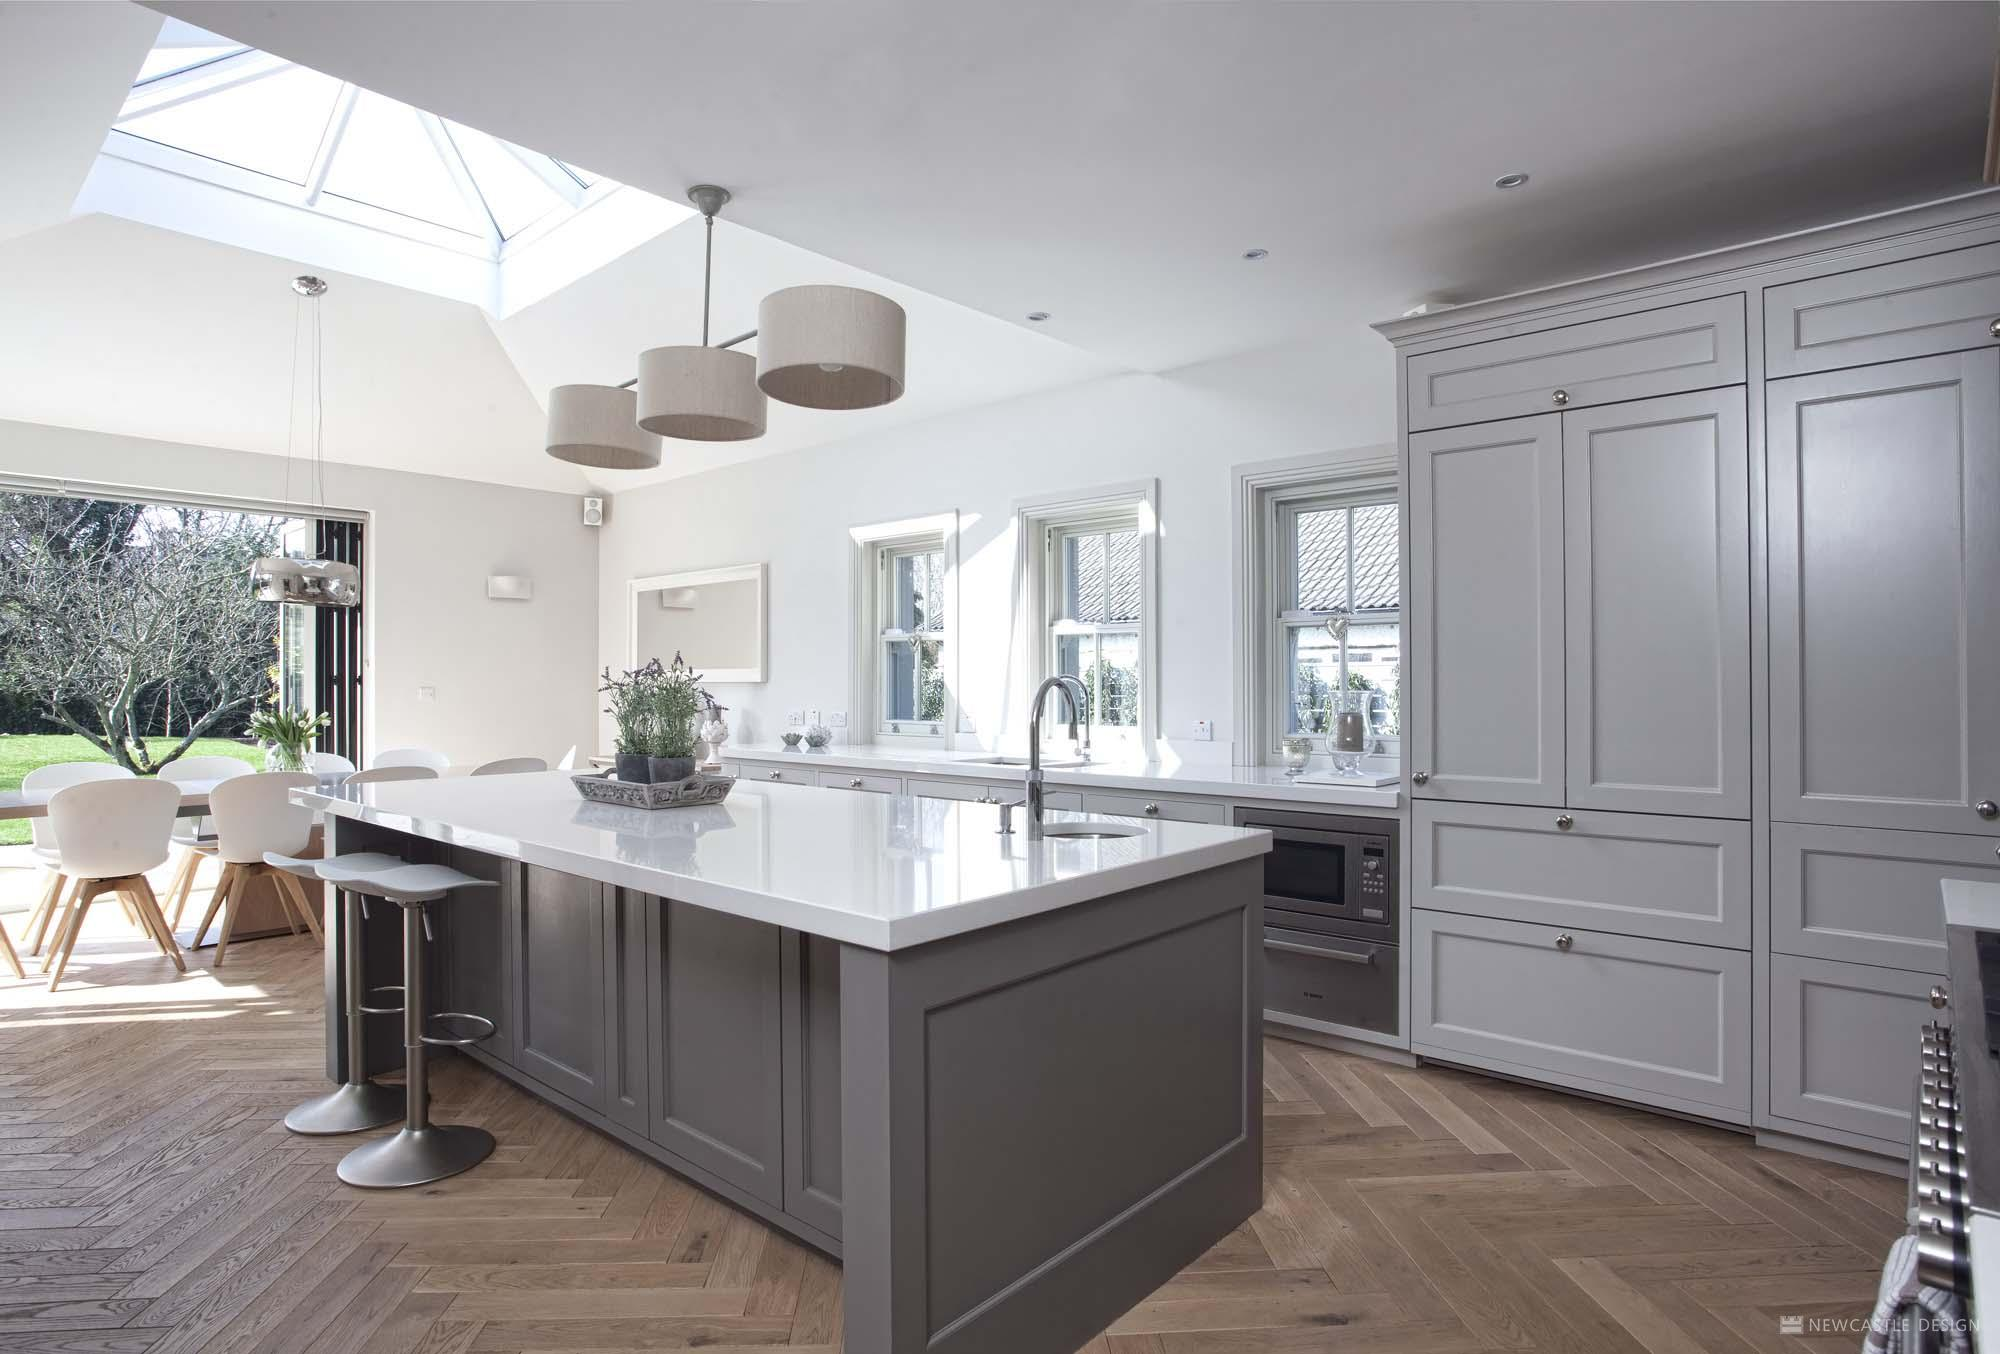 Newcastle design ireland kitchen company dublin for Kitchen cabinets ireland